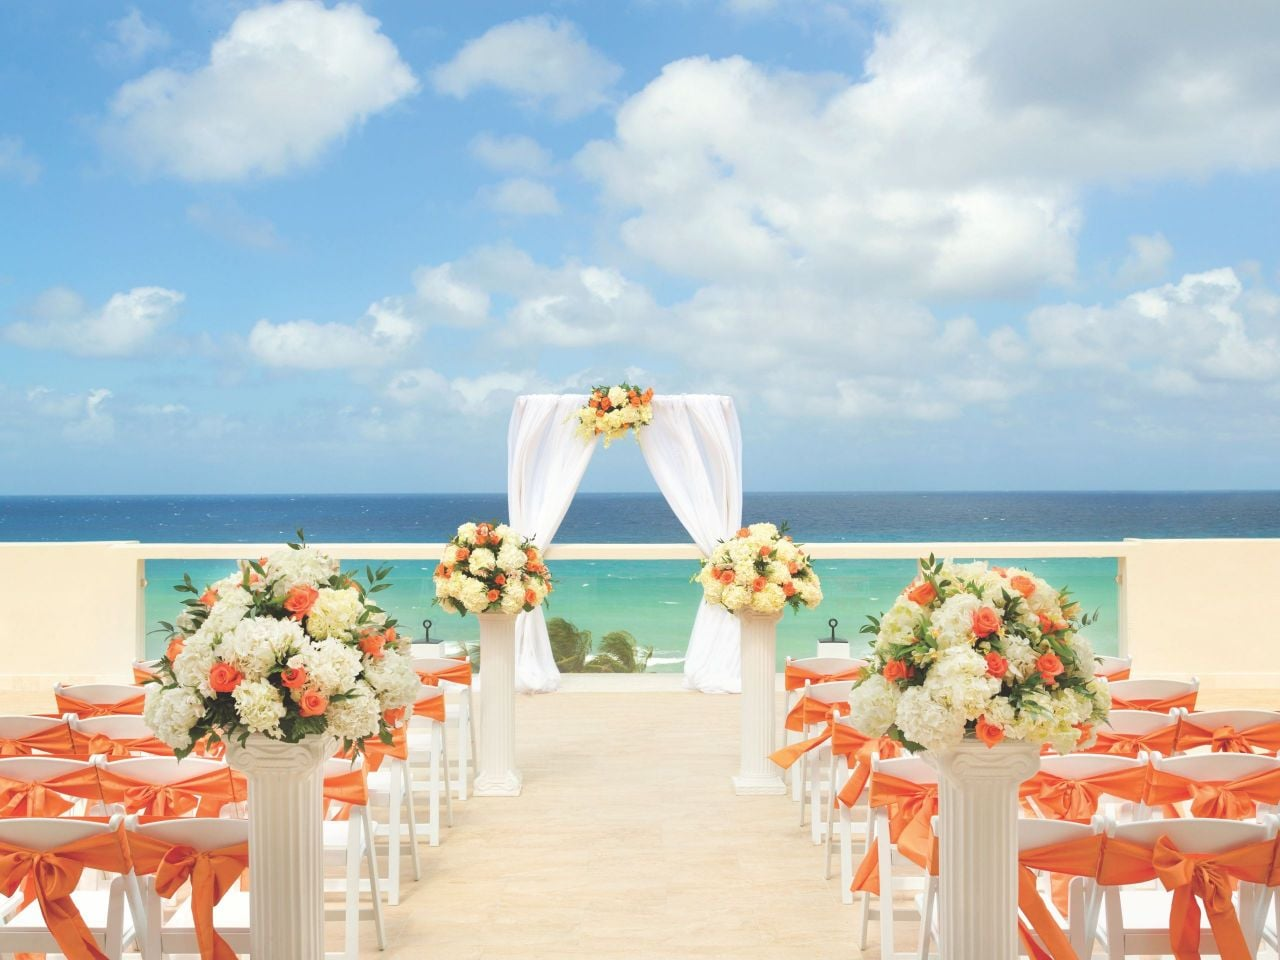 Wedding ceremony setup on resort beachfront